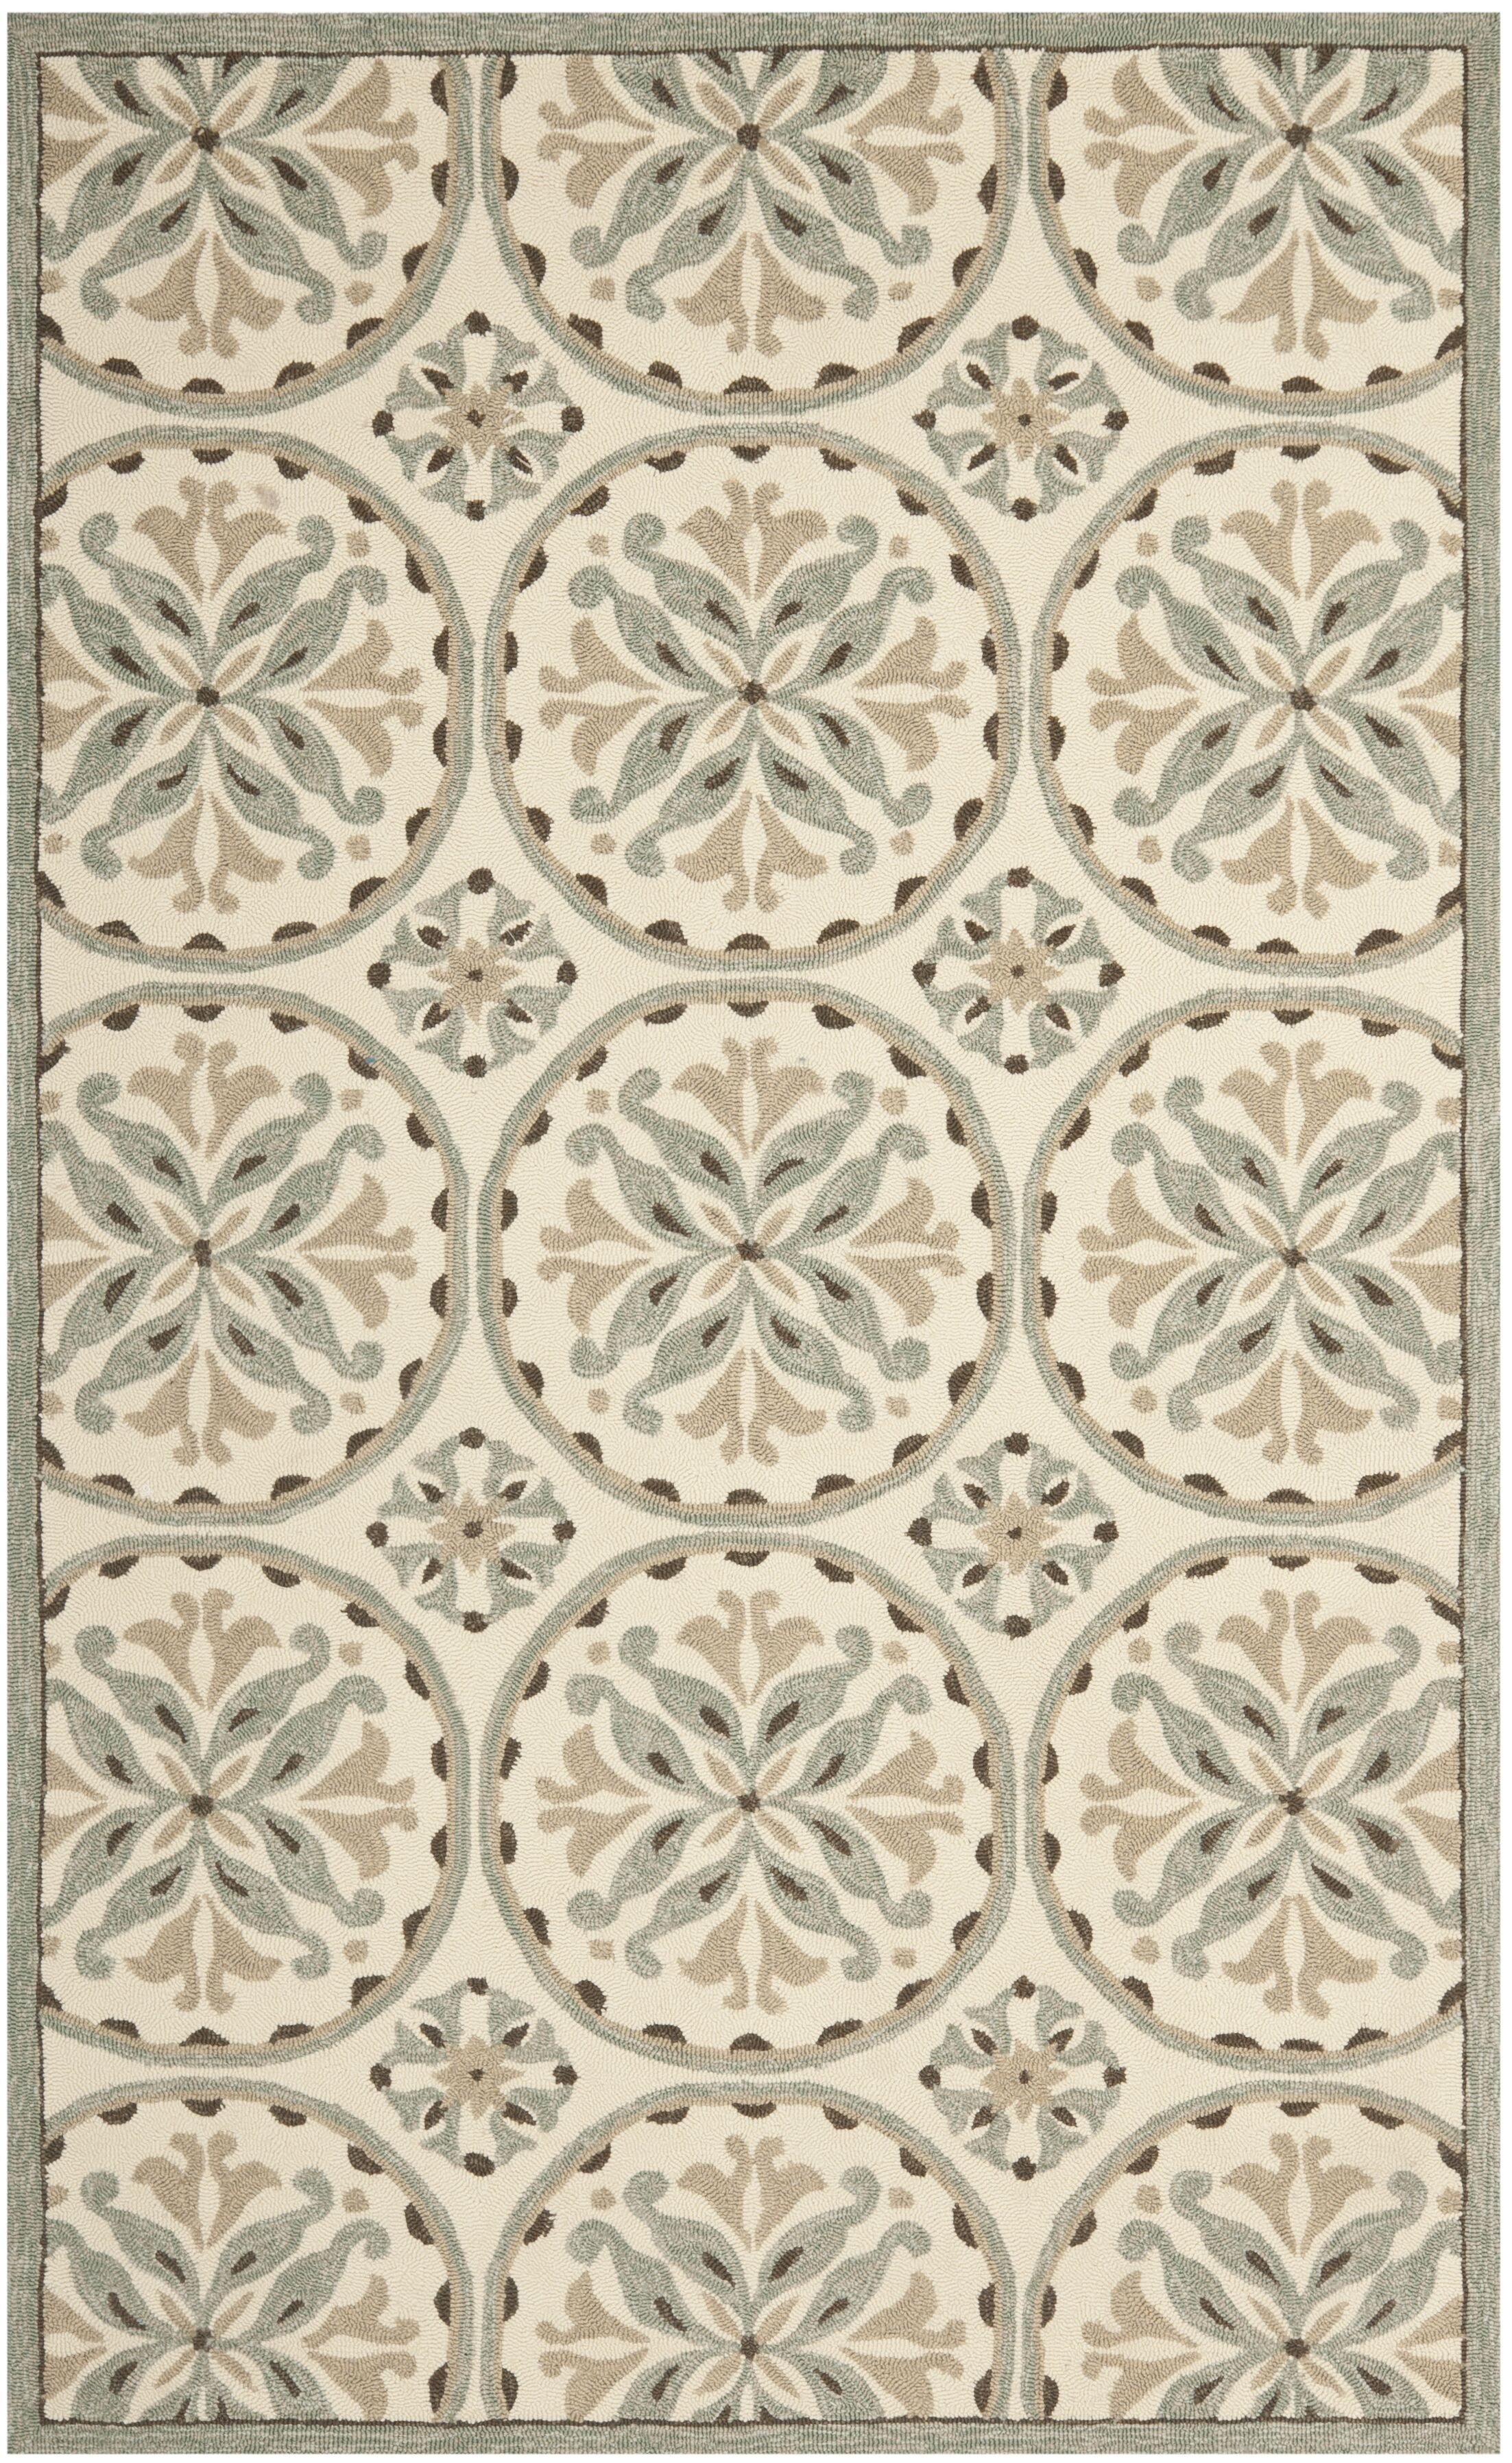 Carvalho Green/Brown Outdoor Area Rug Rug Size: Rectangle 3'6